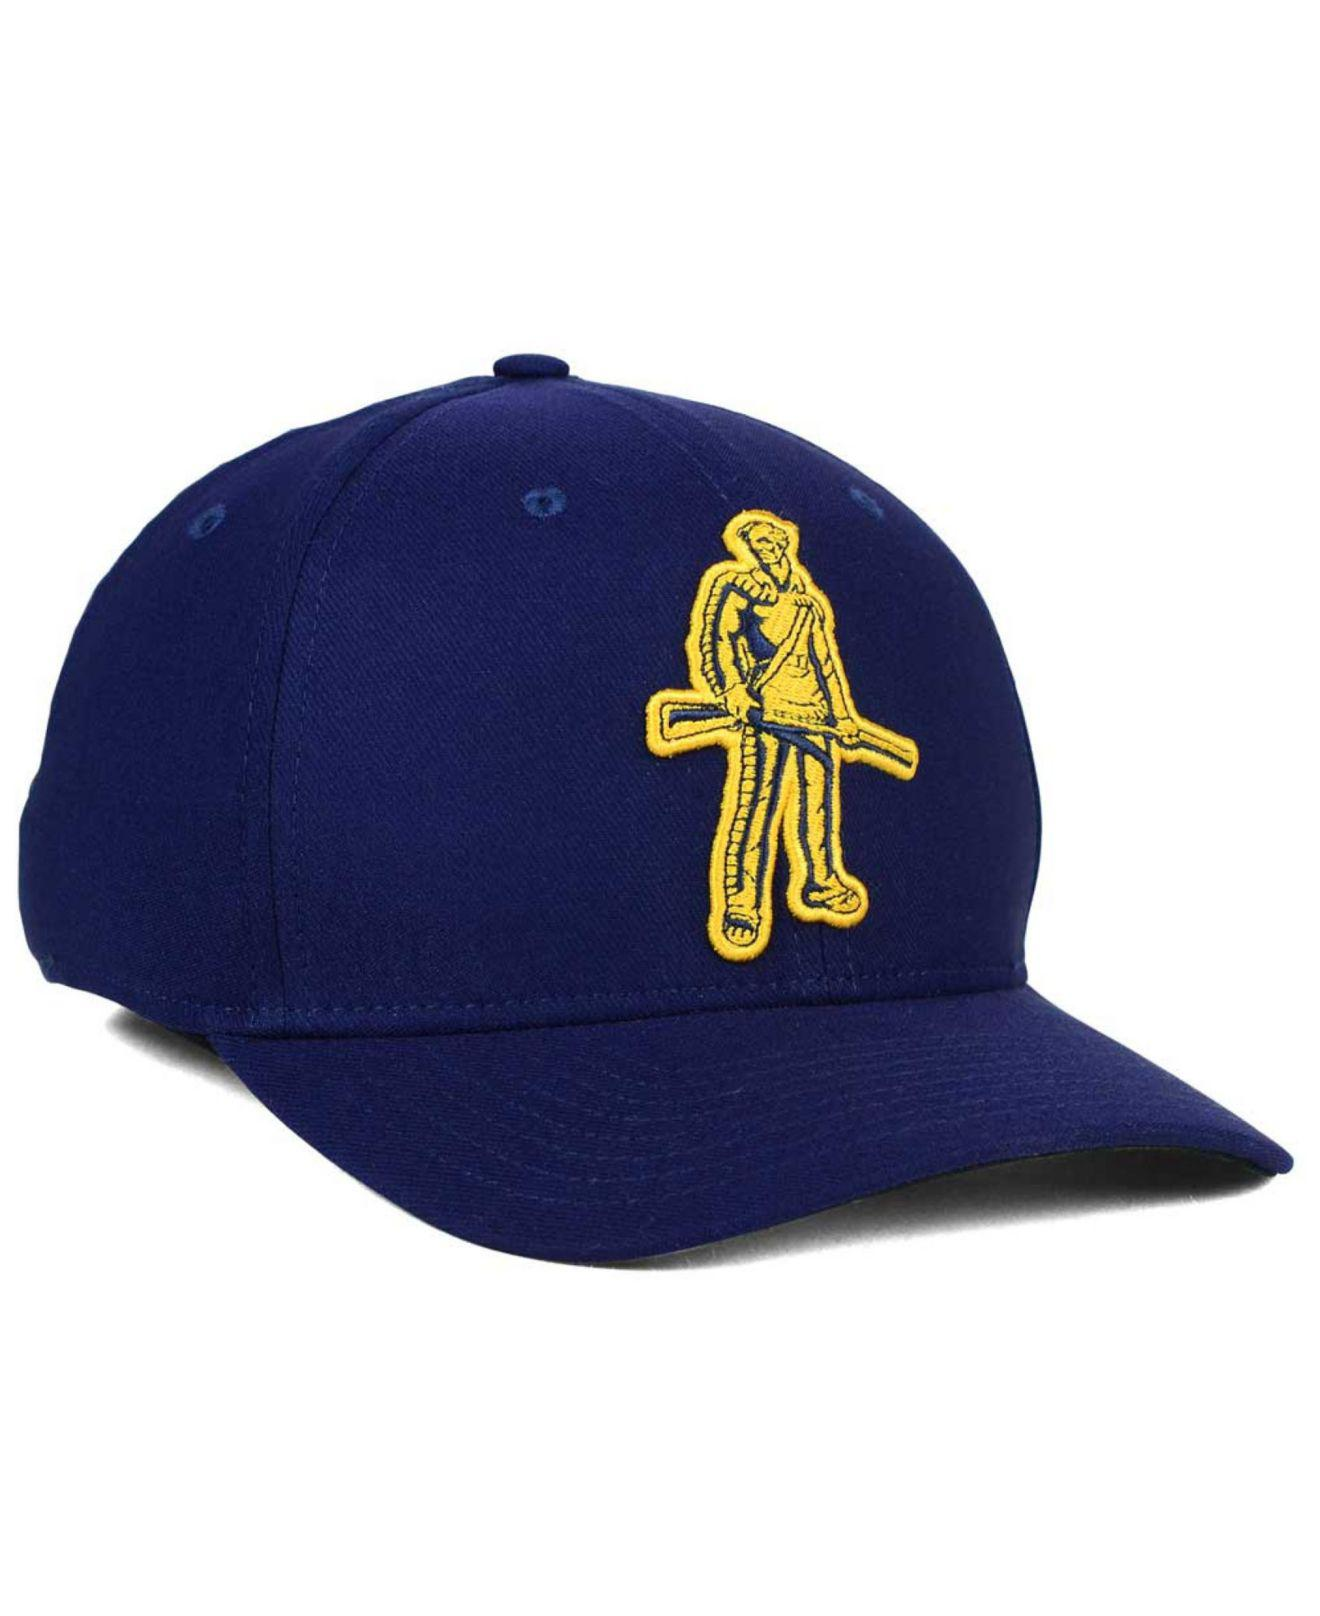 premium selection 58f5b 214d0 ... order nike blue west virginia mountaineers classic swoosh cap for men  lyst. view fullscreen 5278f